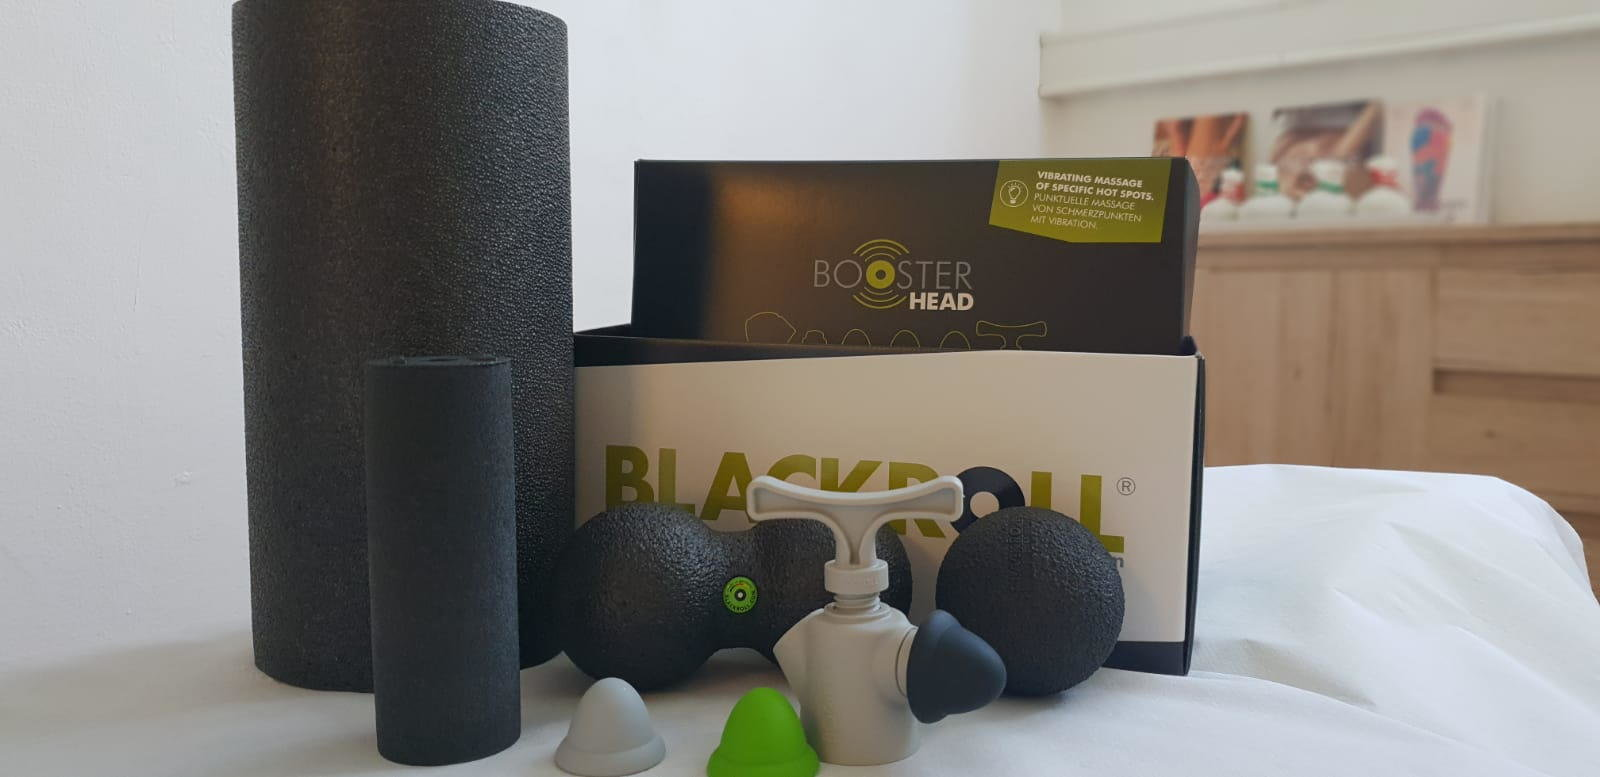 Blackroll im Massagefachinstitut Linsbod